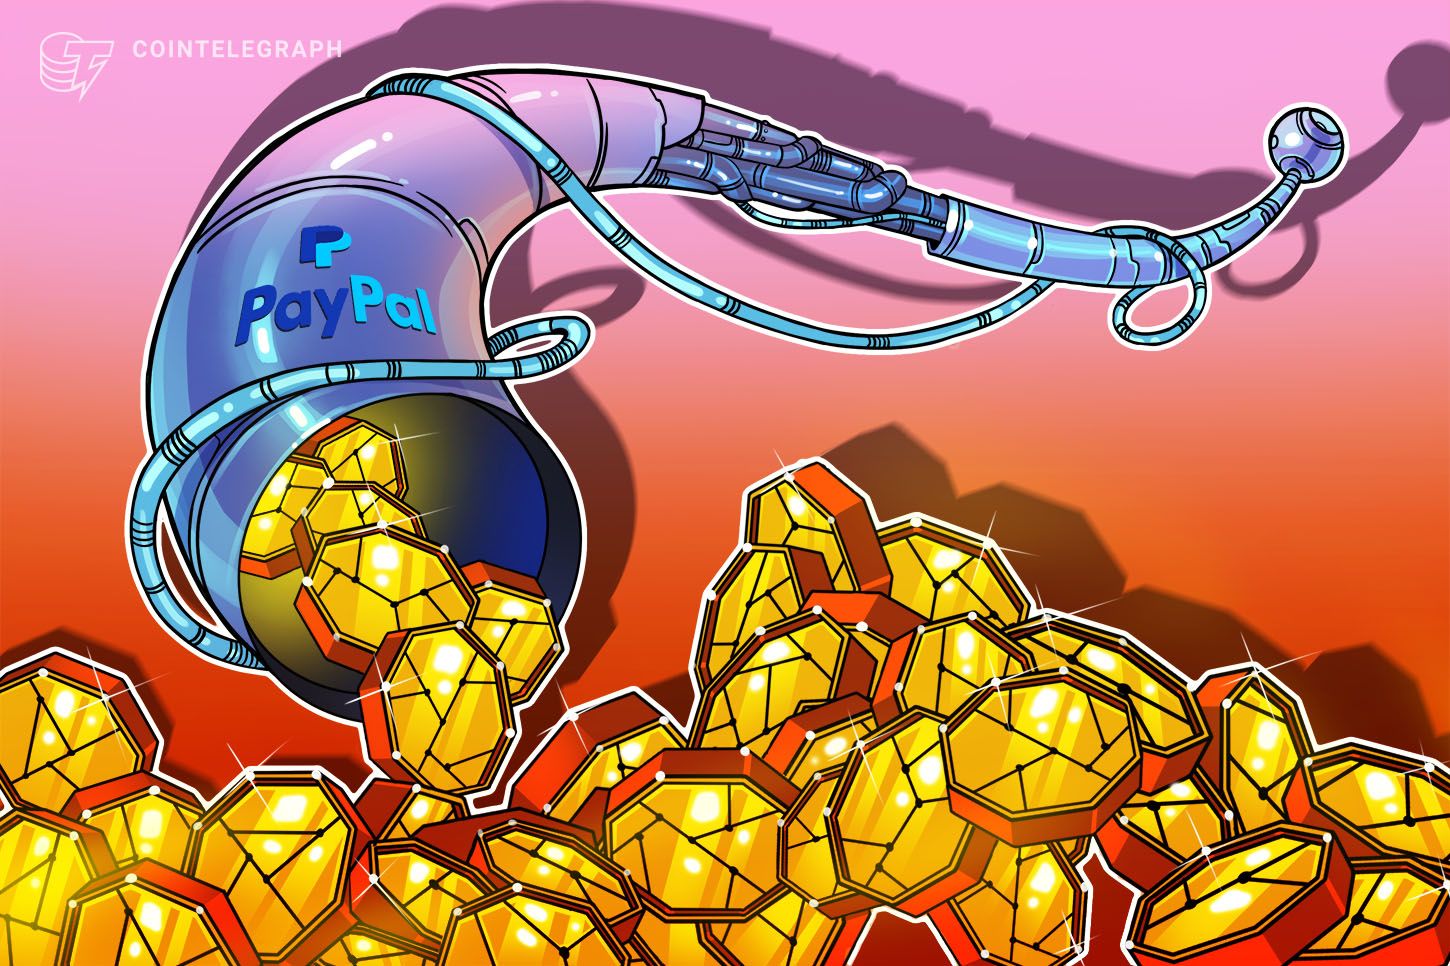 PayPal increases crypto purchase limits to $100K